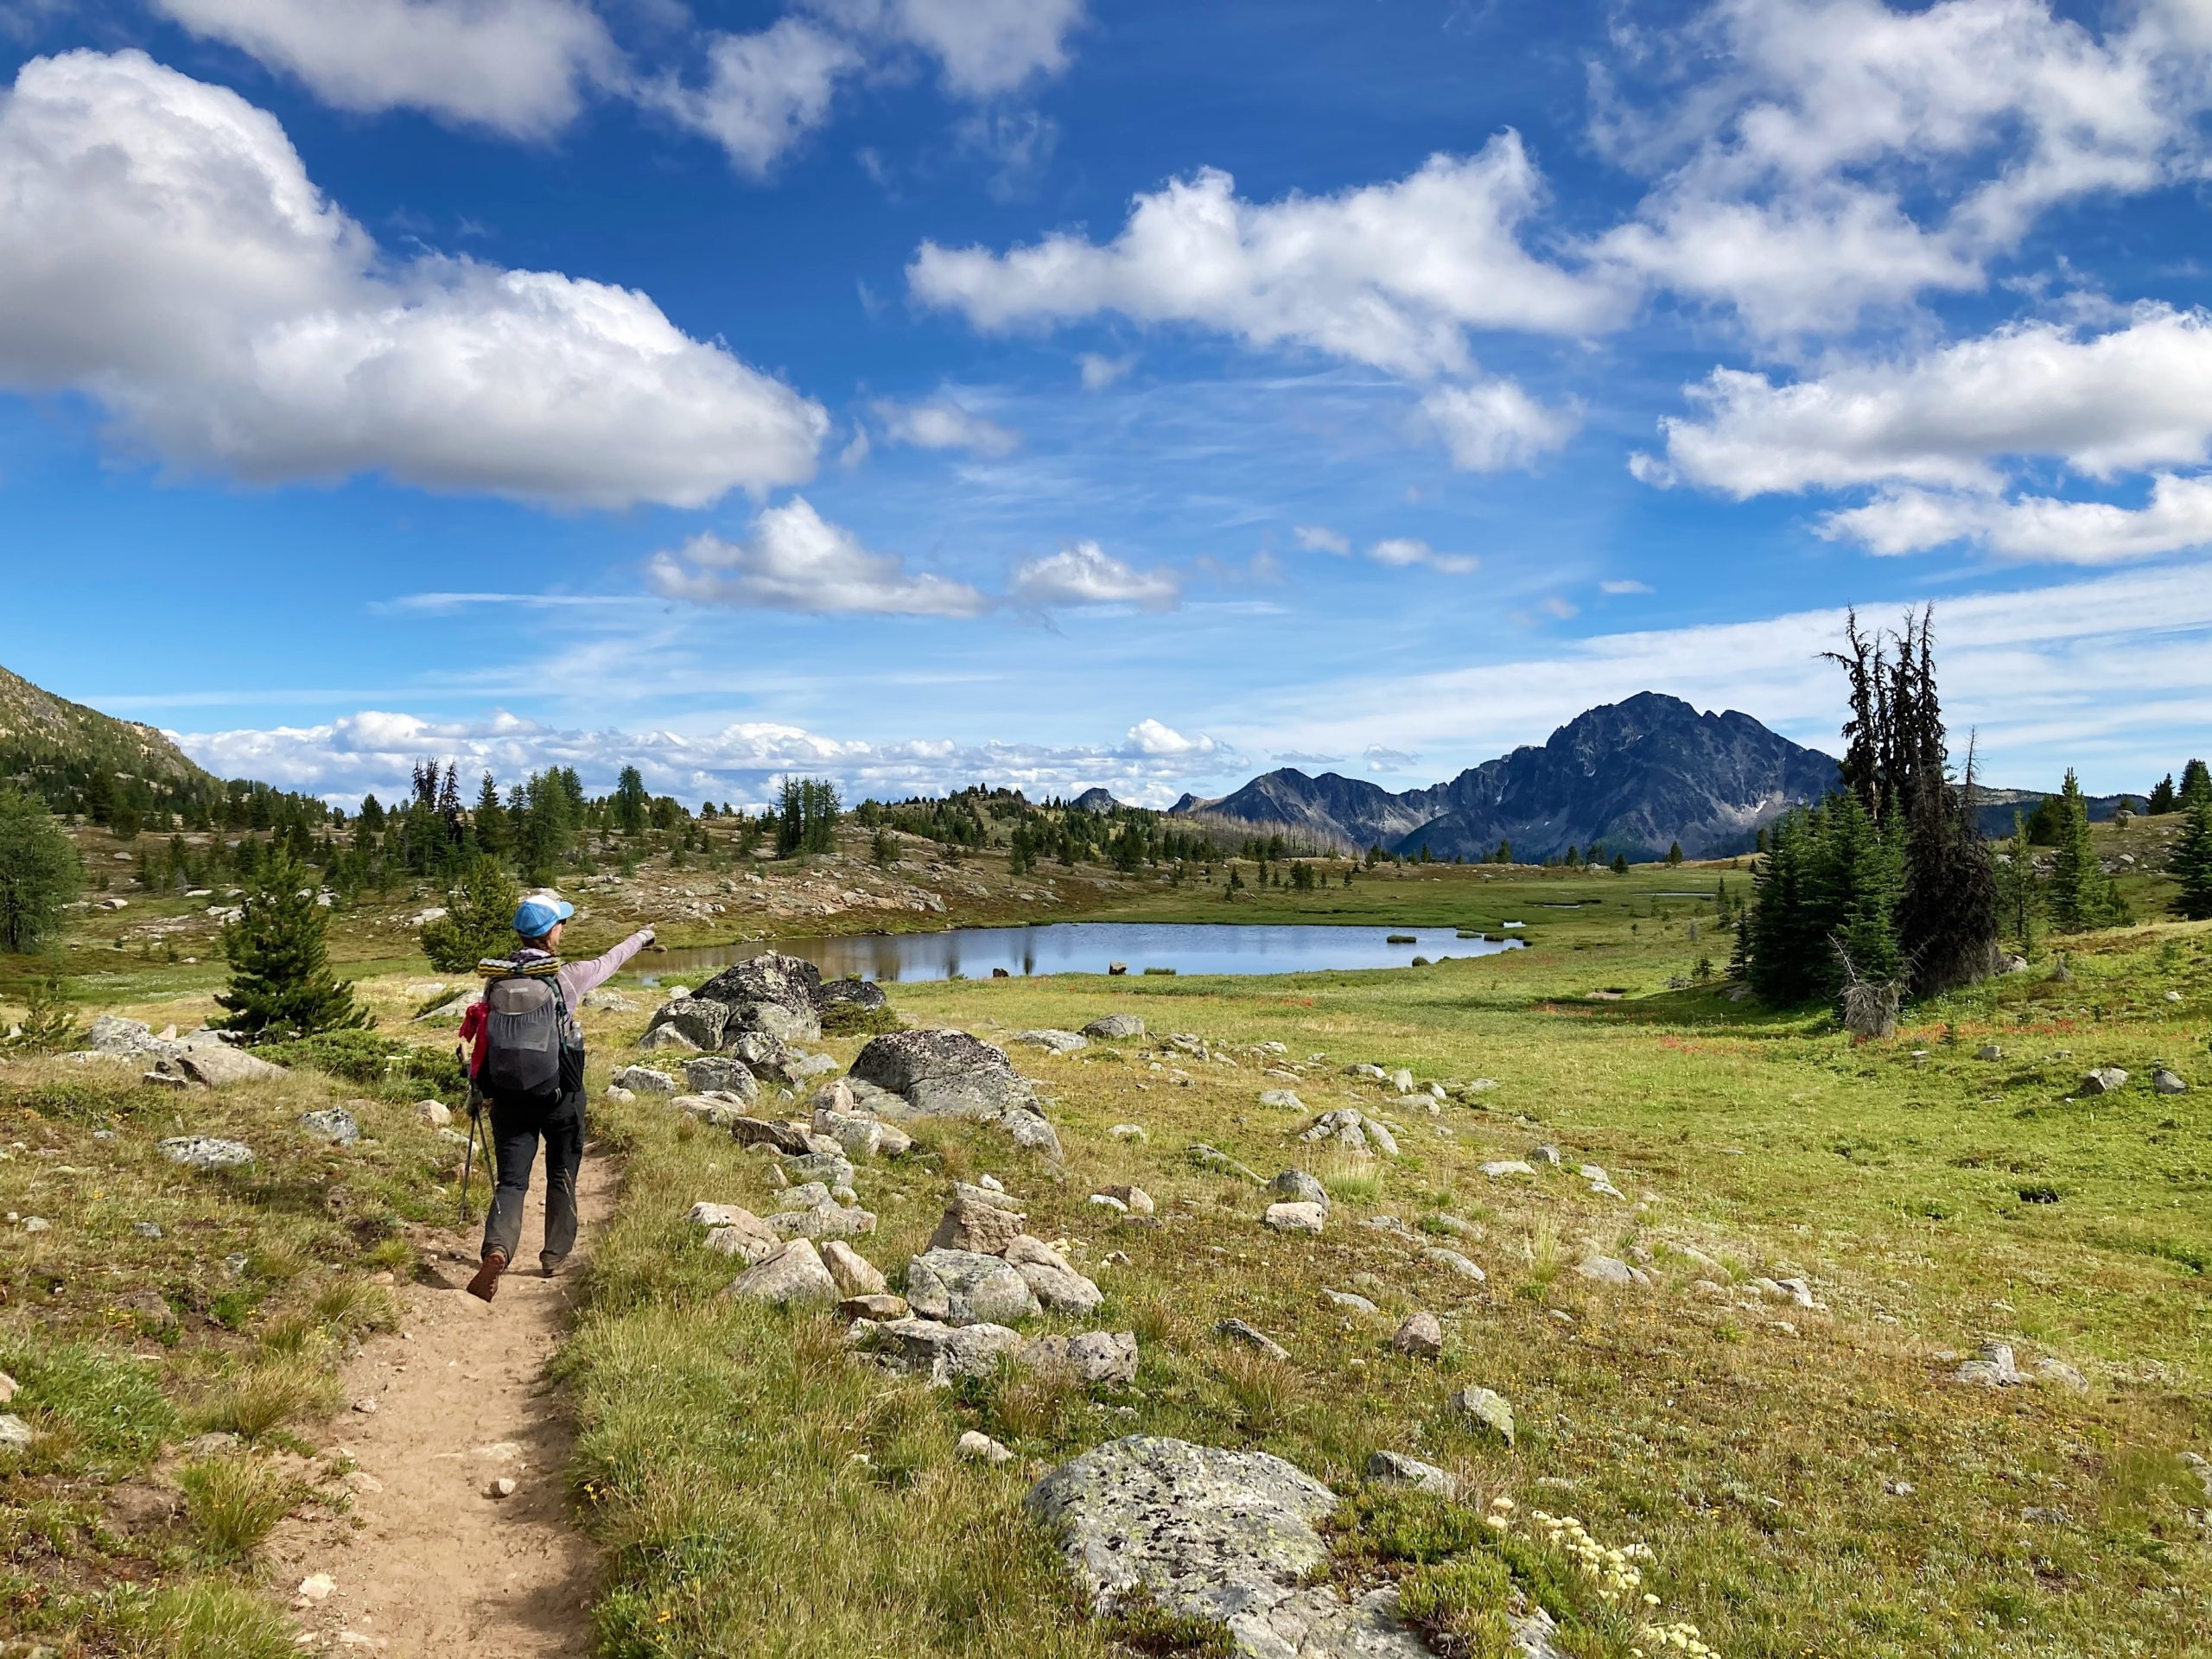 Number six top photo. Hiker walking past lake with big mountain view in the distance.